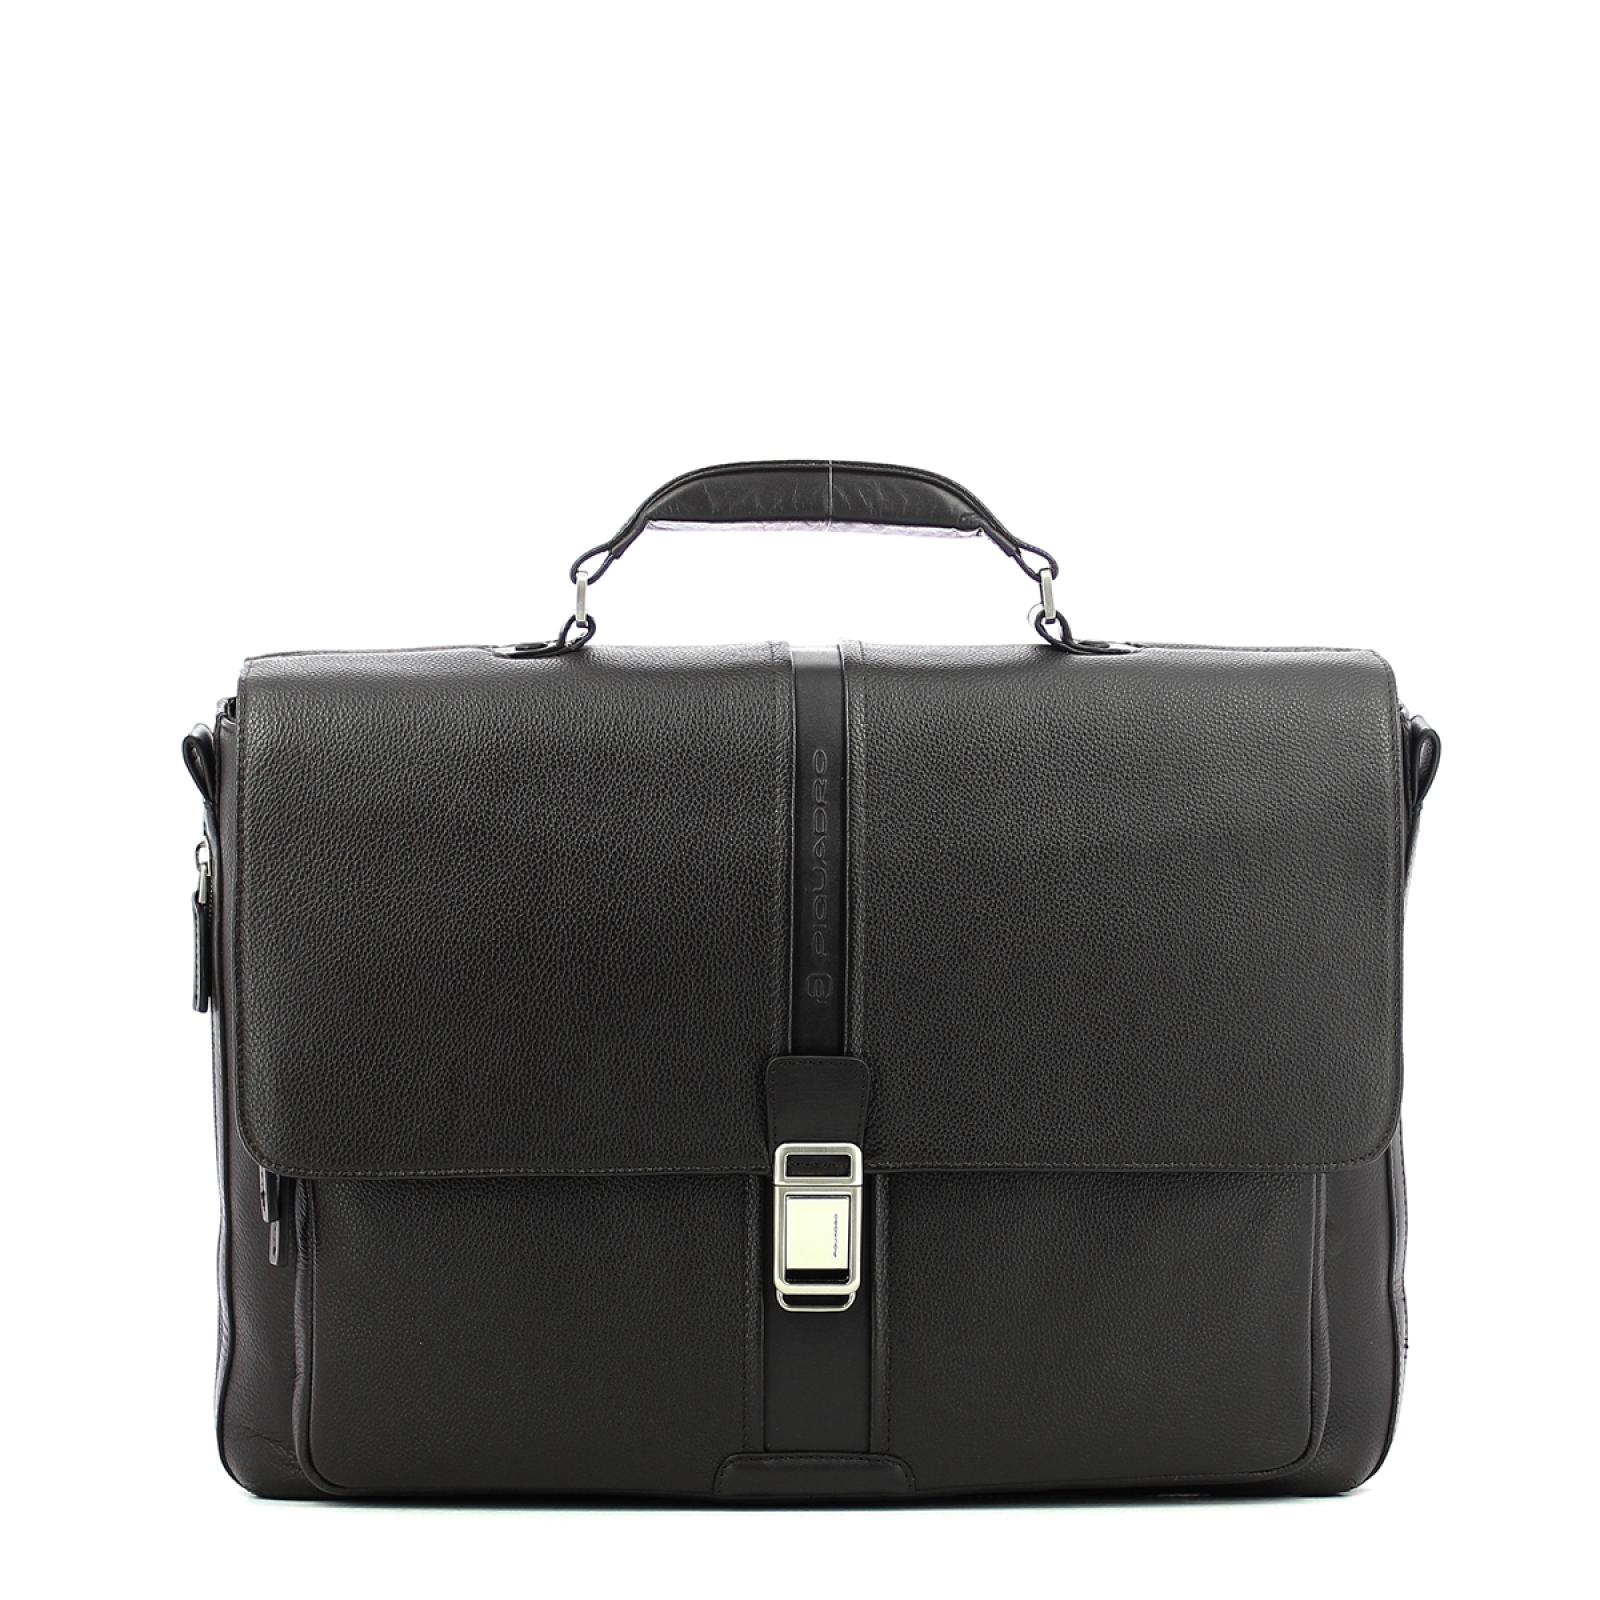 Expandable leather Laptopbag 14.0-MARRONE-UN